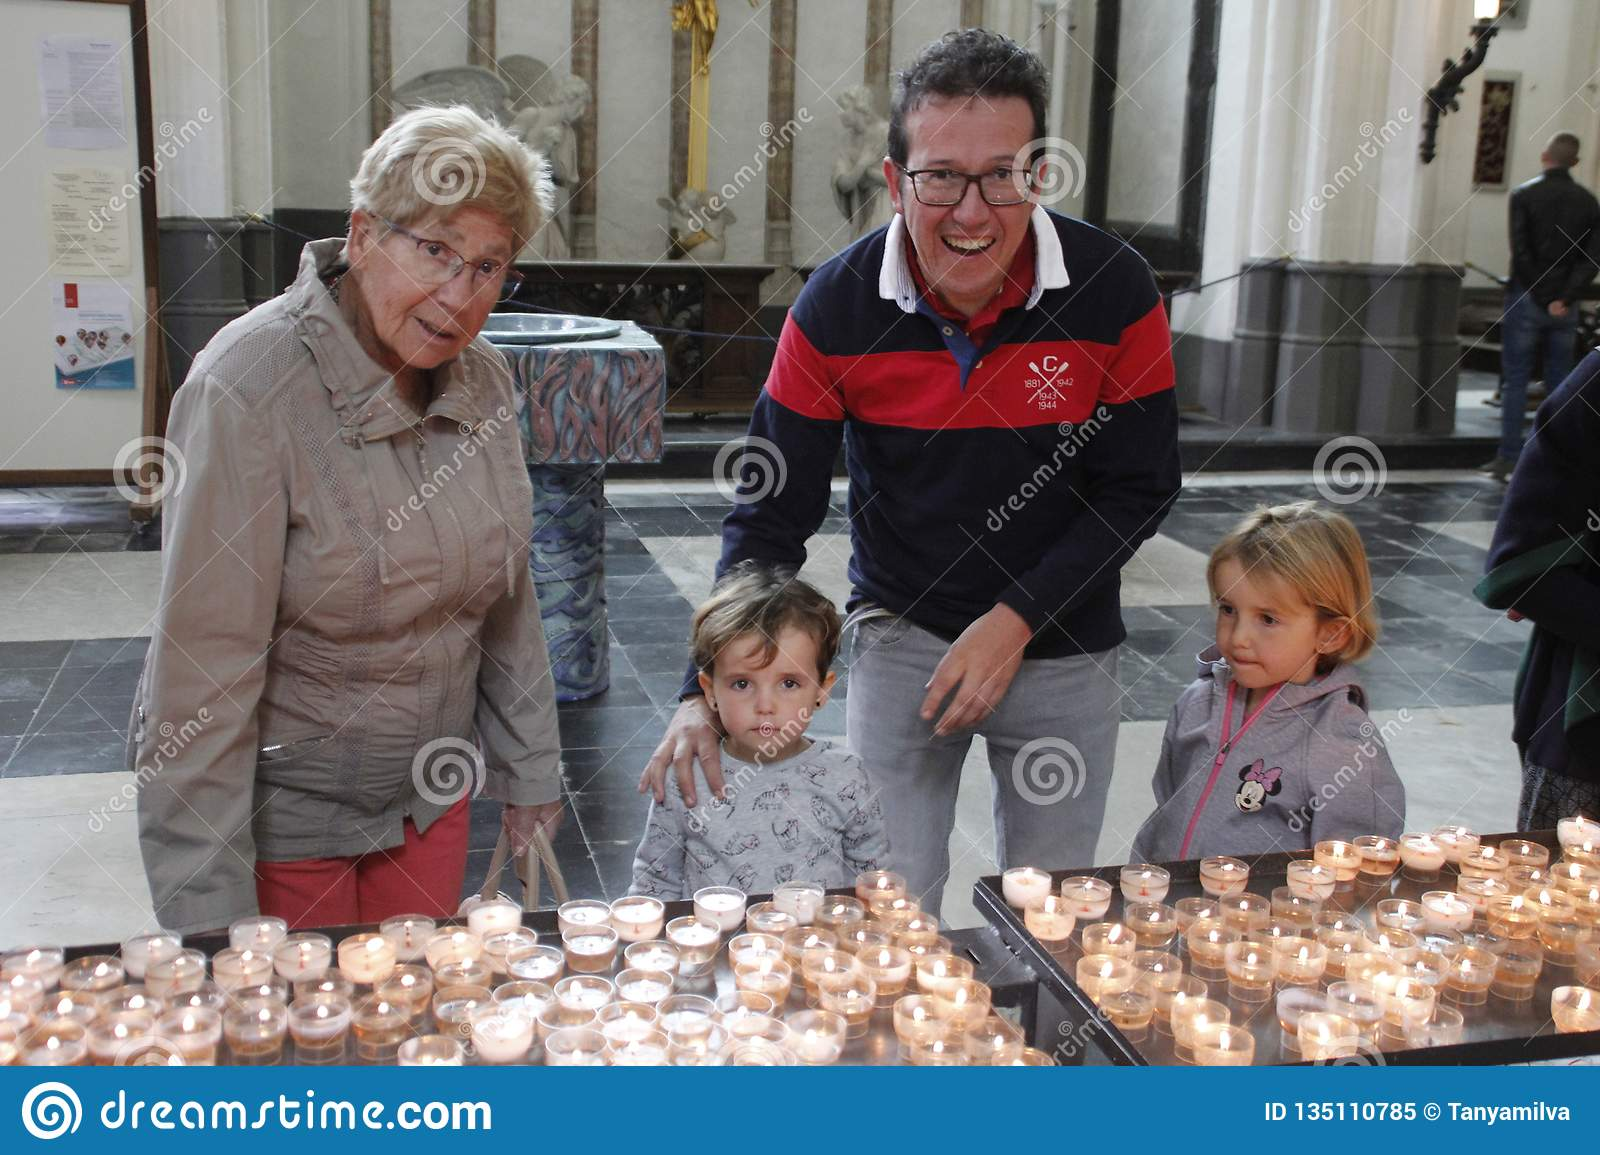 Family: grandmother, father and two little girls sisters light candles inside the church